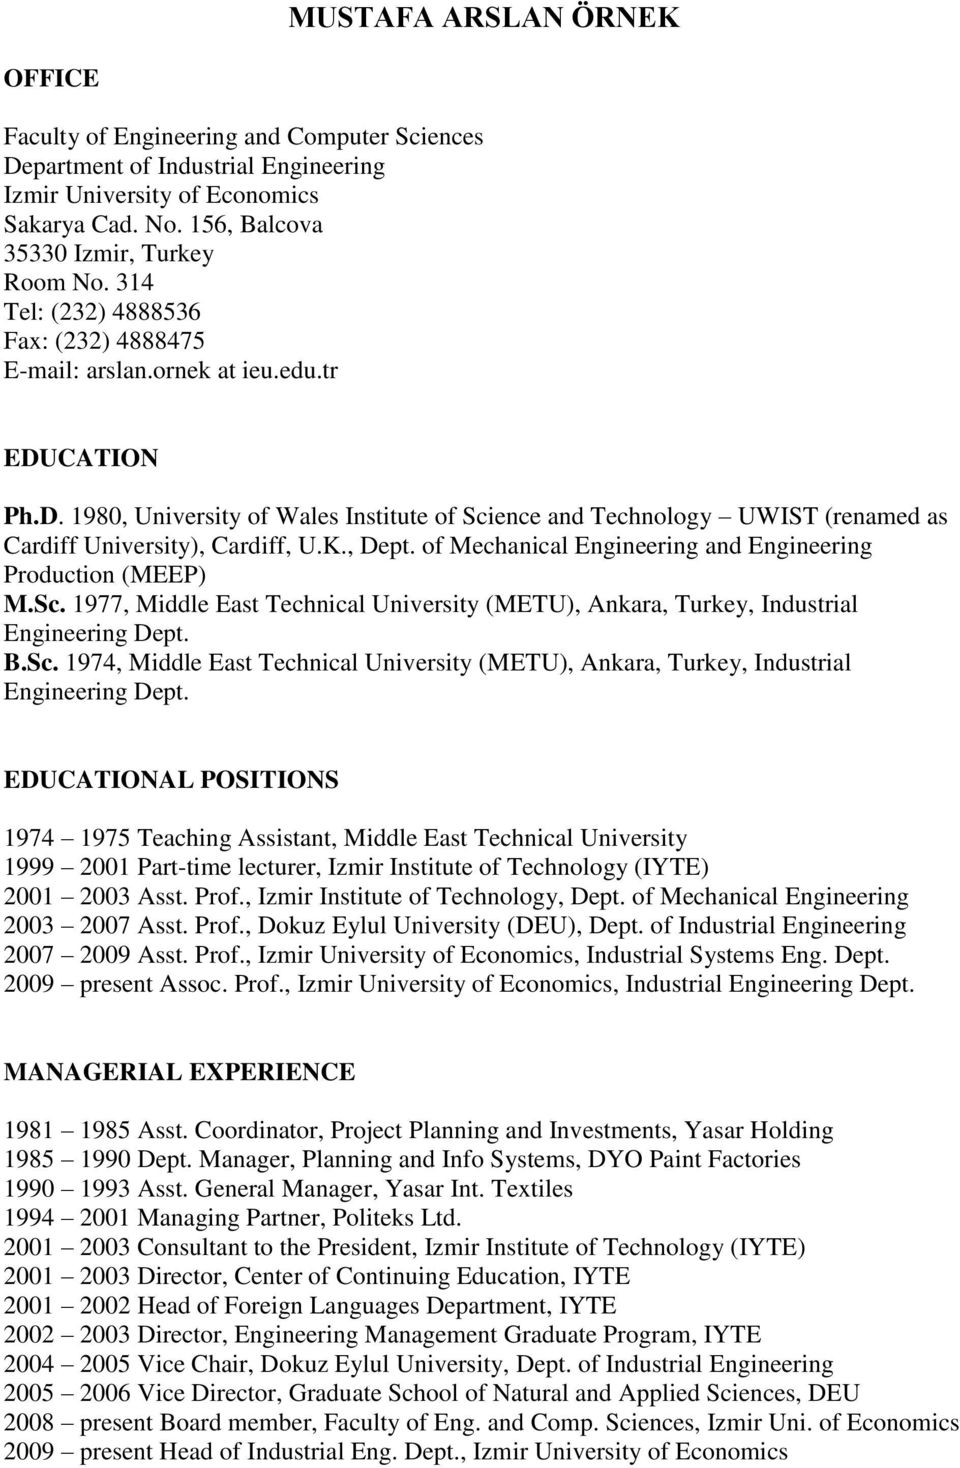 K., Dept. of Mechanical Engineering and Engineering Production (MEEP) M.Sc. 1977, Middle East Technical University (METU), Ankara, Turkey, Industrial Engineering Dept. B.Sc. 1974, Middle East Technical University (METU), Ankara, Turkey, Industrial Engineering Dept.